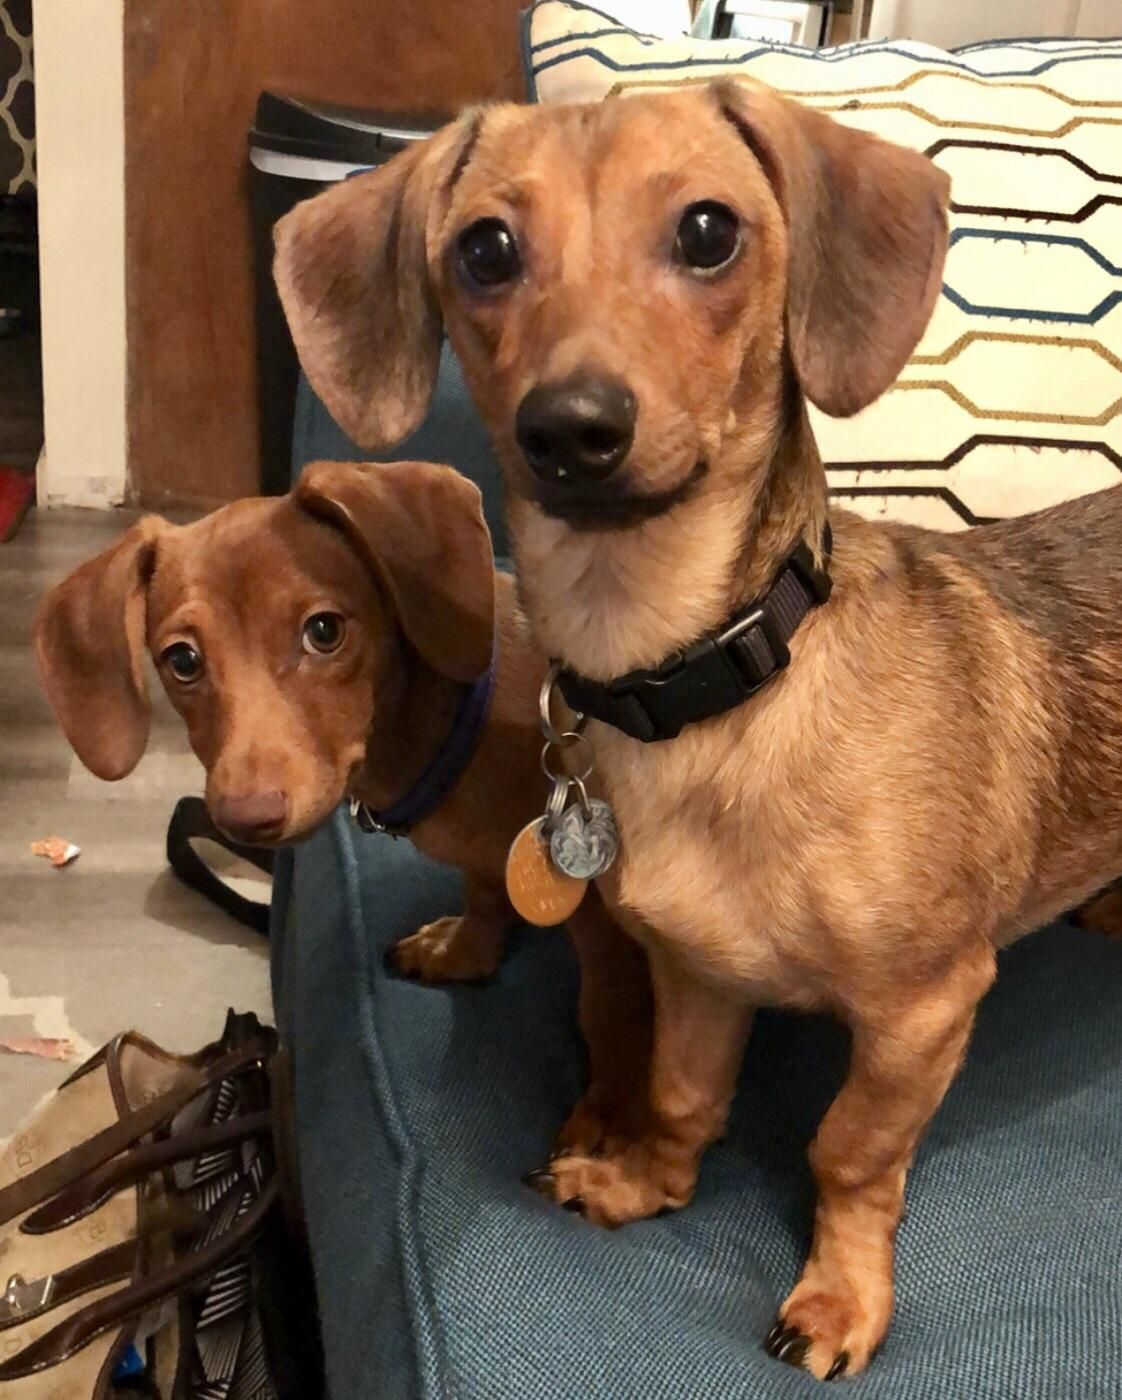 Us Tear Up Cardboard All Over The Floor Never Please Donate Us Hello There Bright People Are You Doglover Or Have You Dog Lovers Dachshund Cute Animals